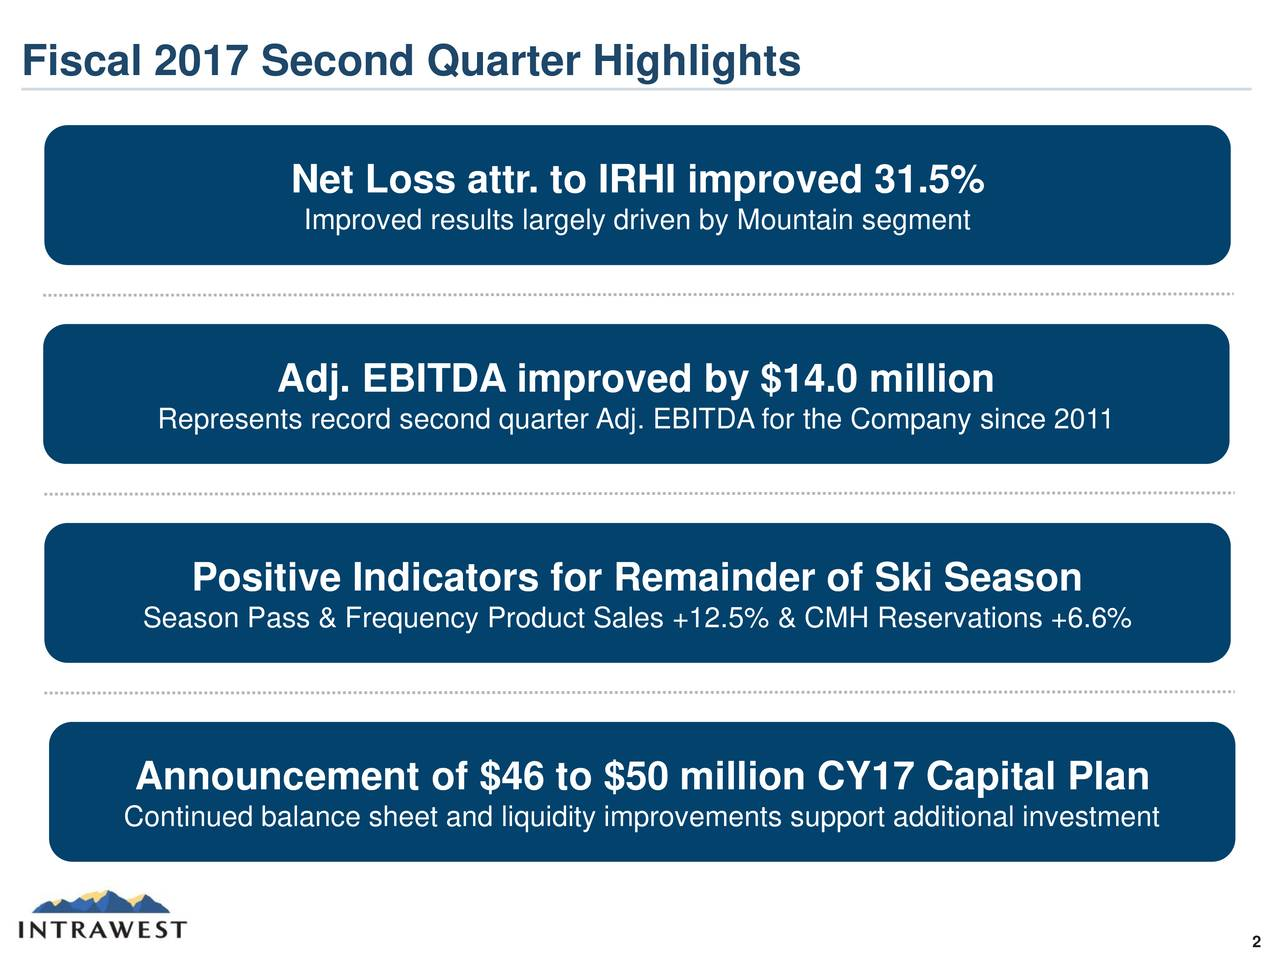 Net Loss attr. to IRHI improved 31.5% Improved results largely driven by Mountain segment Adj. EBITDA improved by $14.0 million Represents record second quarter Adj. EBITDA for the Company since 2011 Positive Indicators for Remainder of Ski Season Season Pass & Frequency Product Sales +12.5% & CMH Reservations +6.6% Announcement of $46 to $50 million CY17 Capital Plan Continued balance sheet and liquidity improvements support additional investment